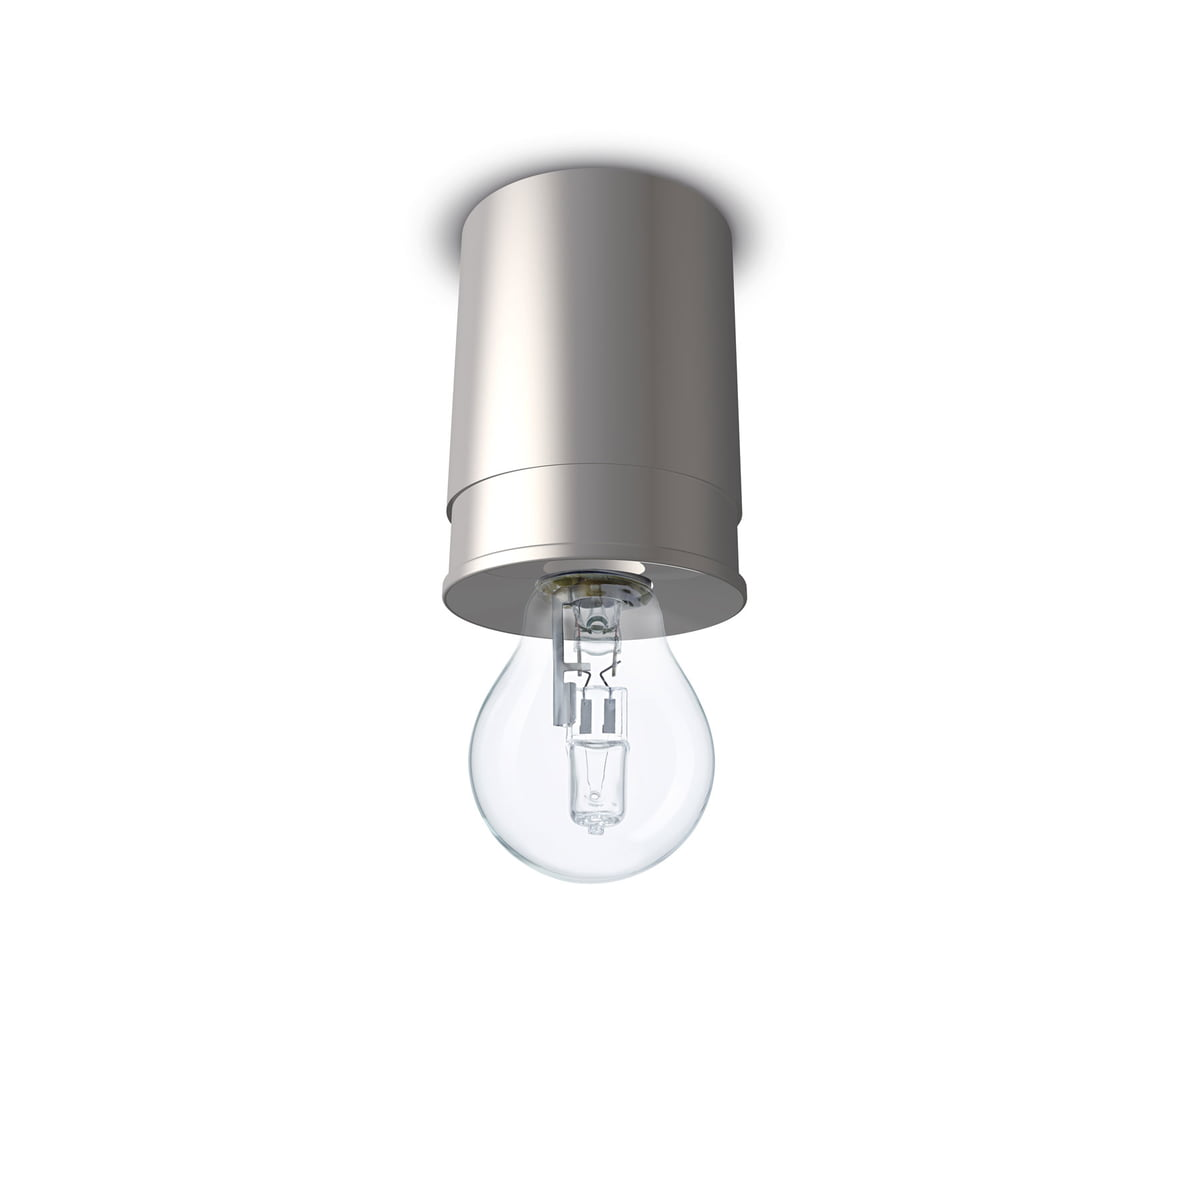 Classic ceiling lamps by twister lighting lamp classic by twister lighting in silver aloadofball Images